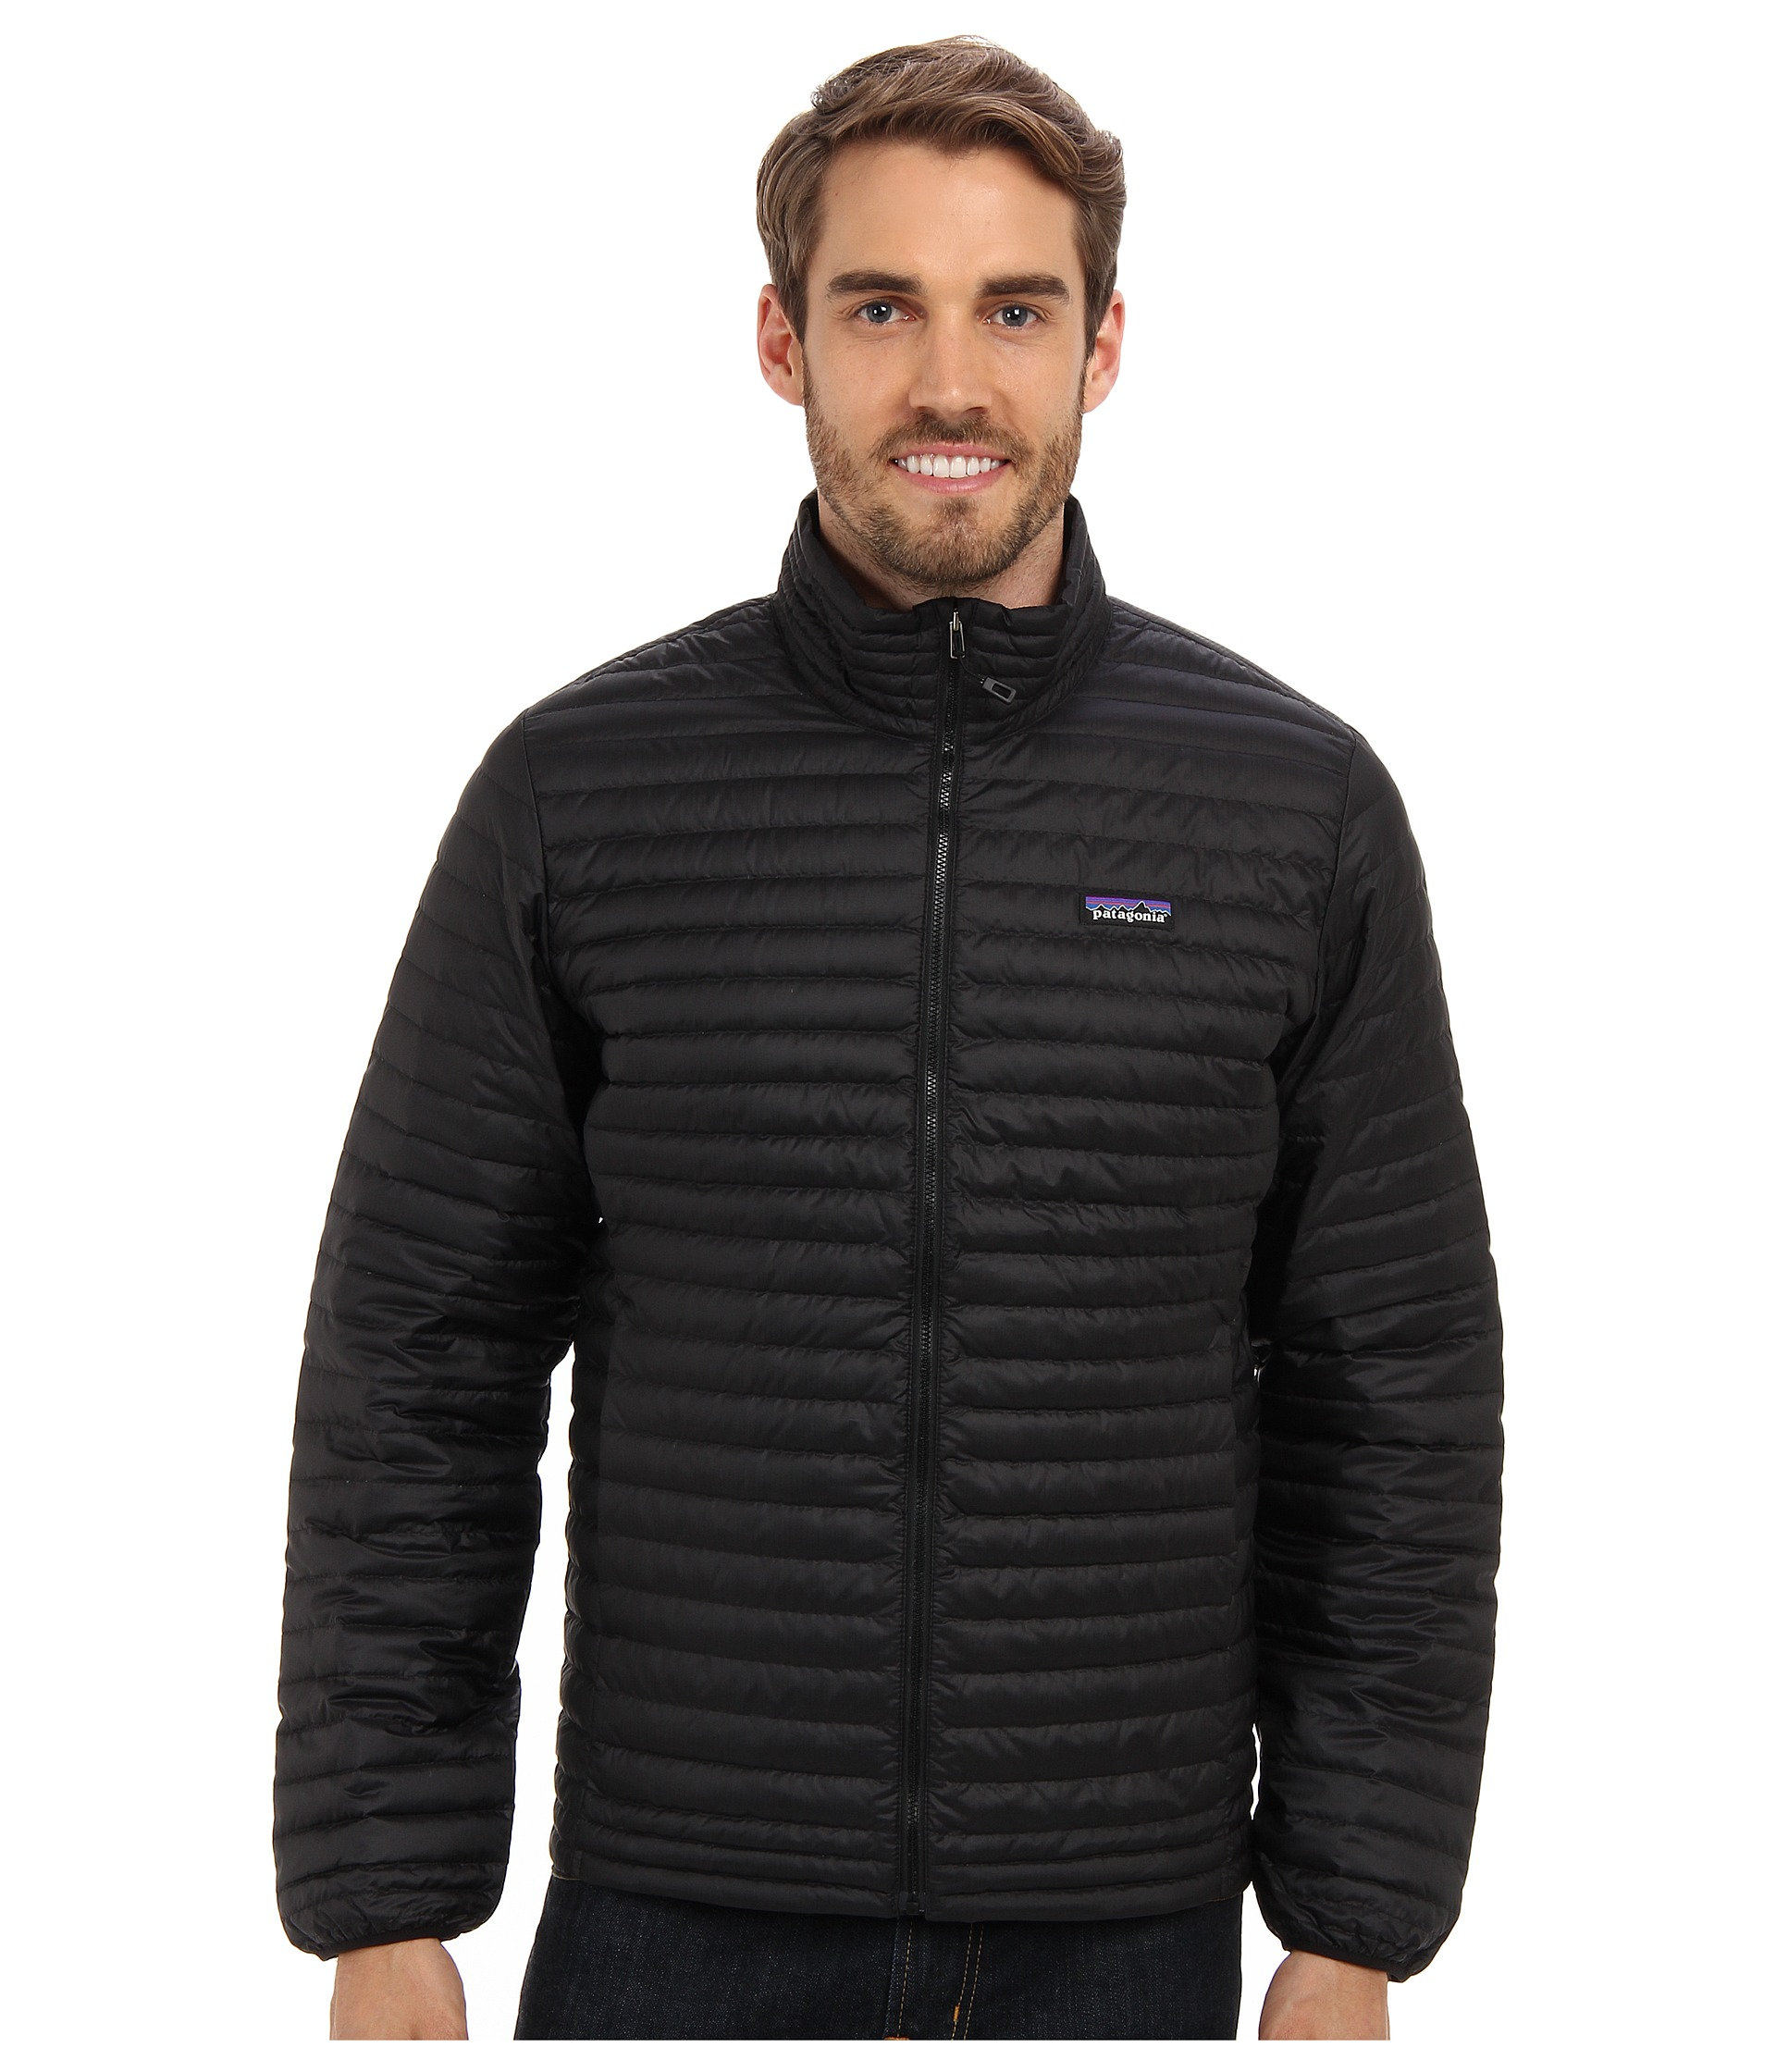 Patagonia Down Shirt In Black For Men Lyst